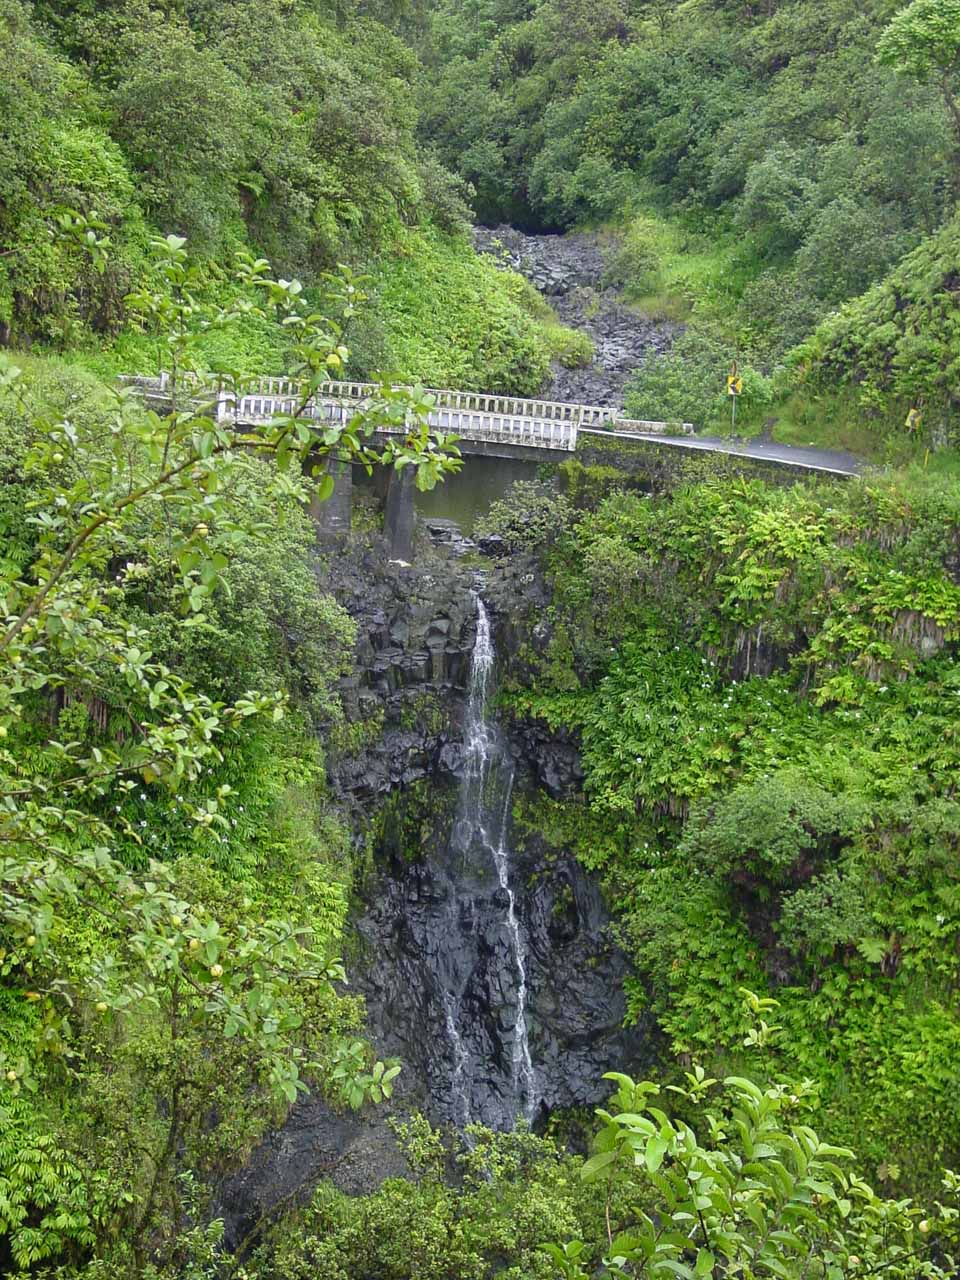 Lower Wailuaiki Falls when not in flood